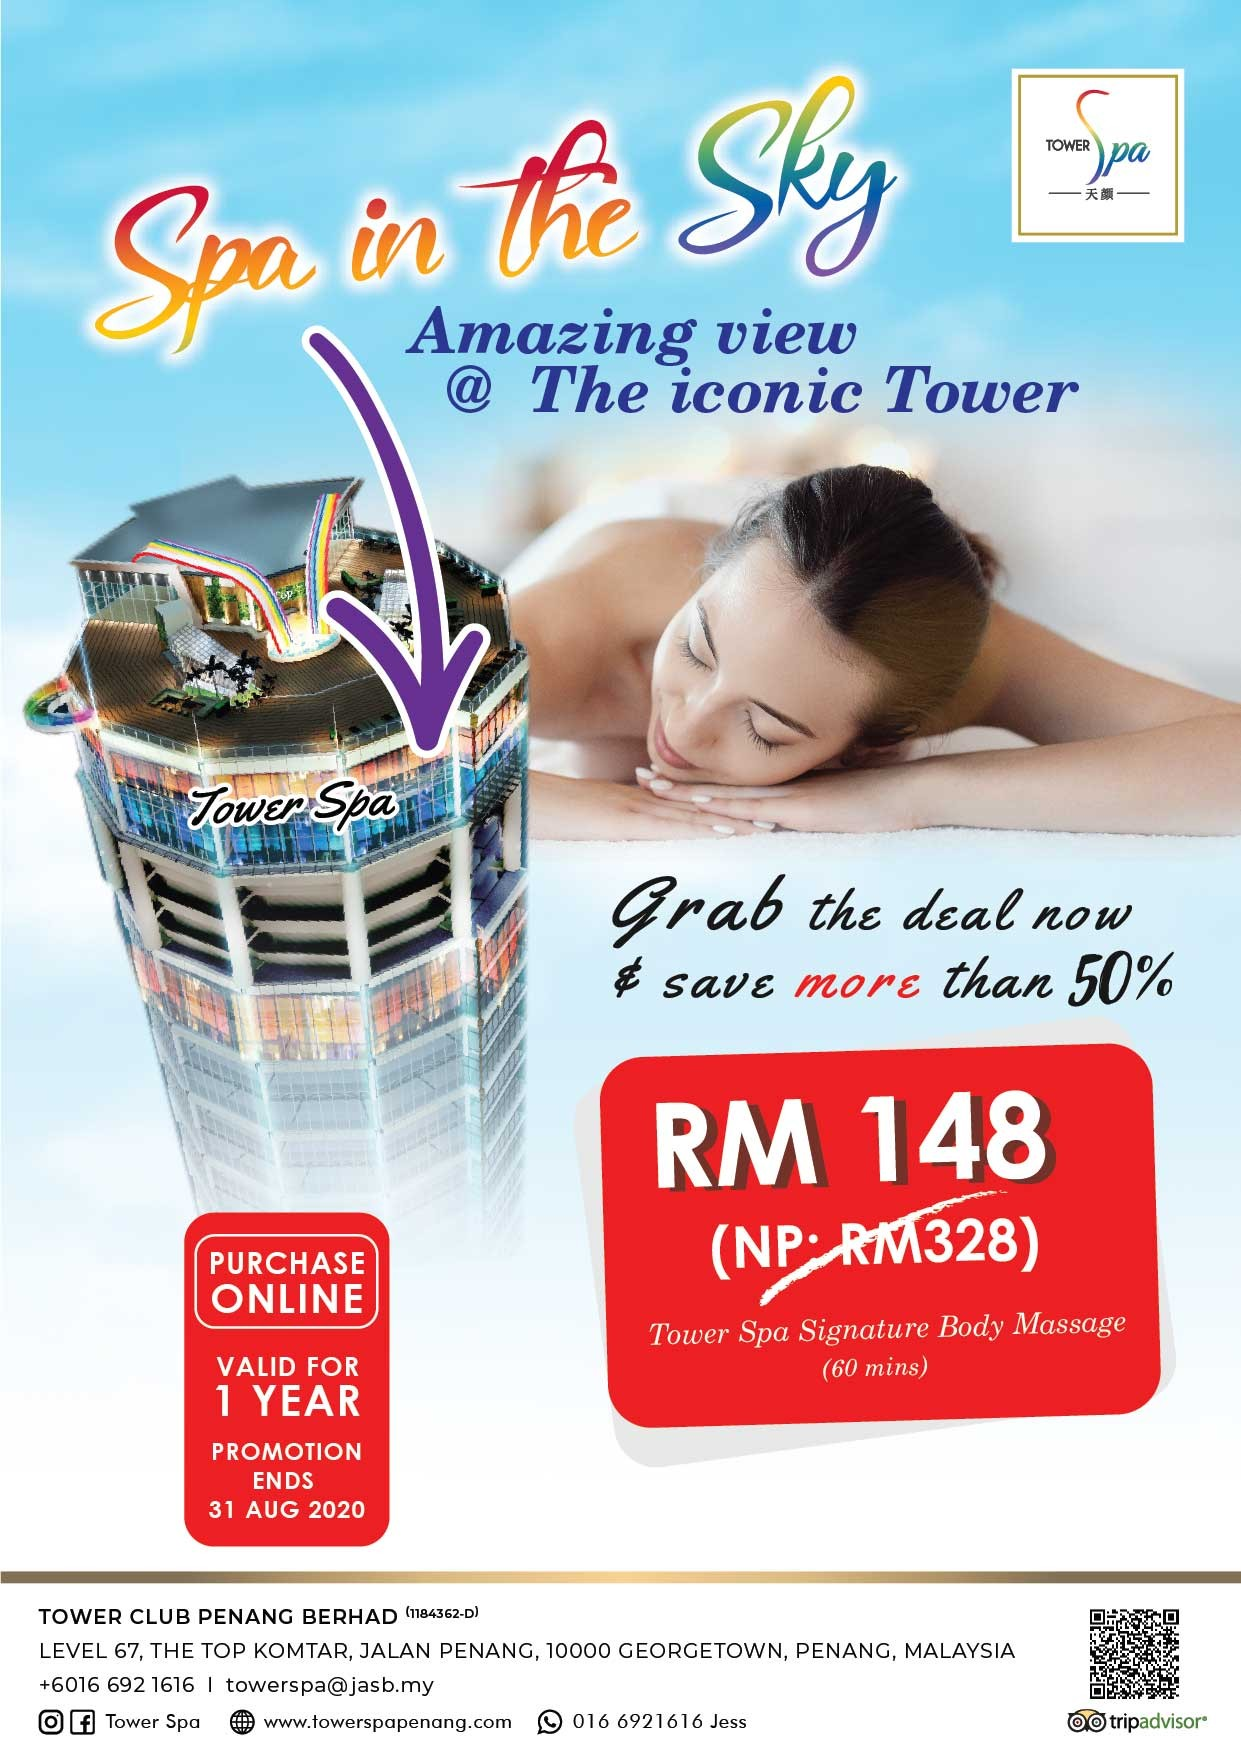 The Top Tower Spa